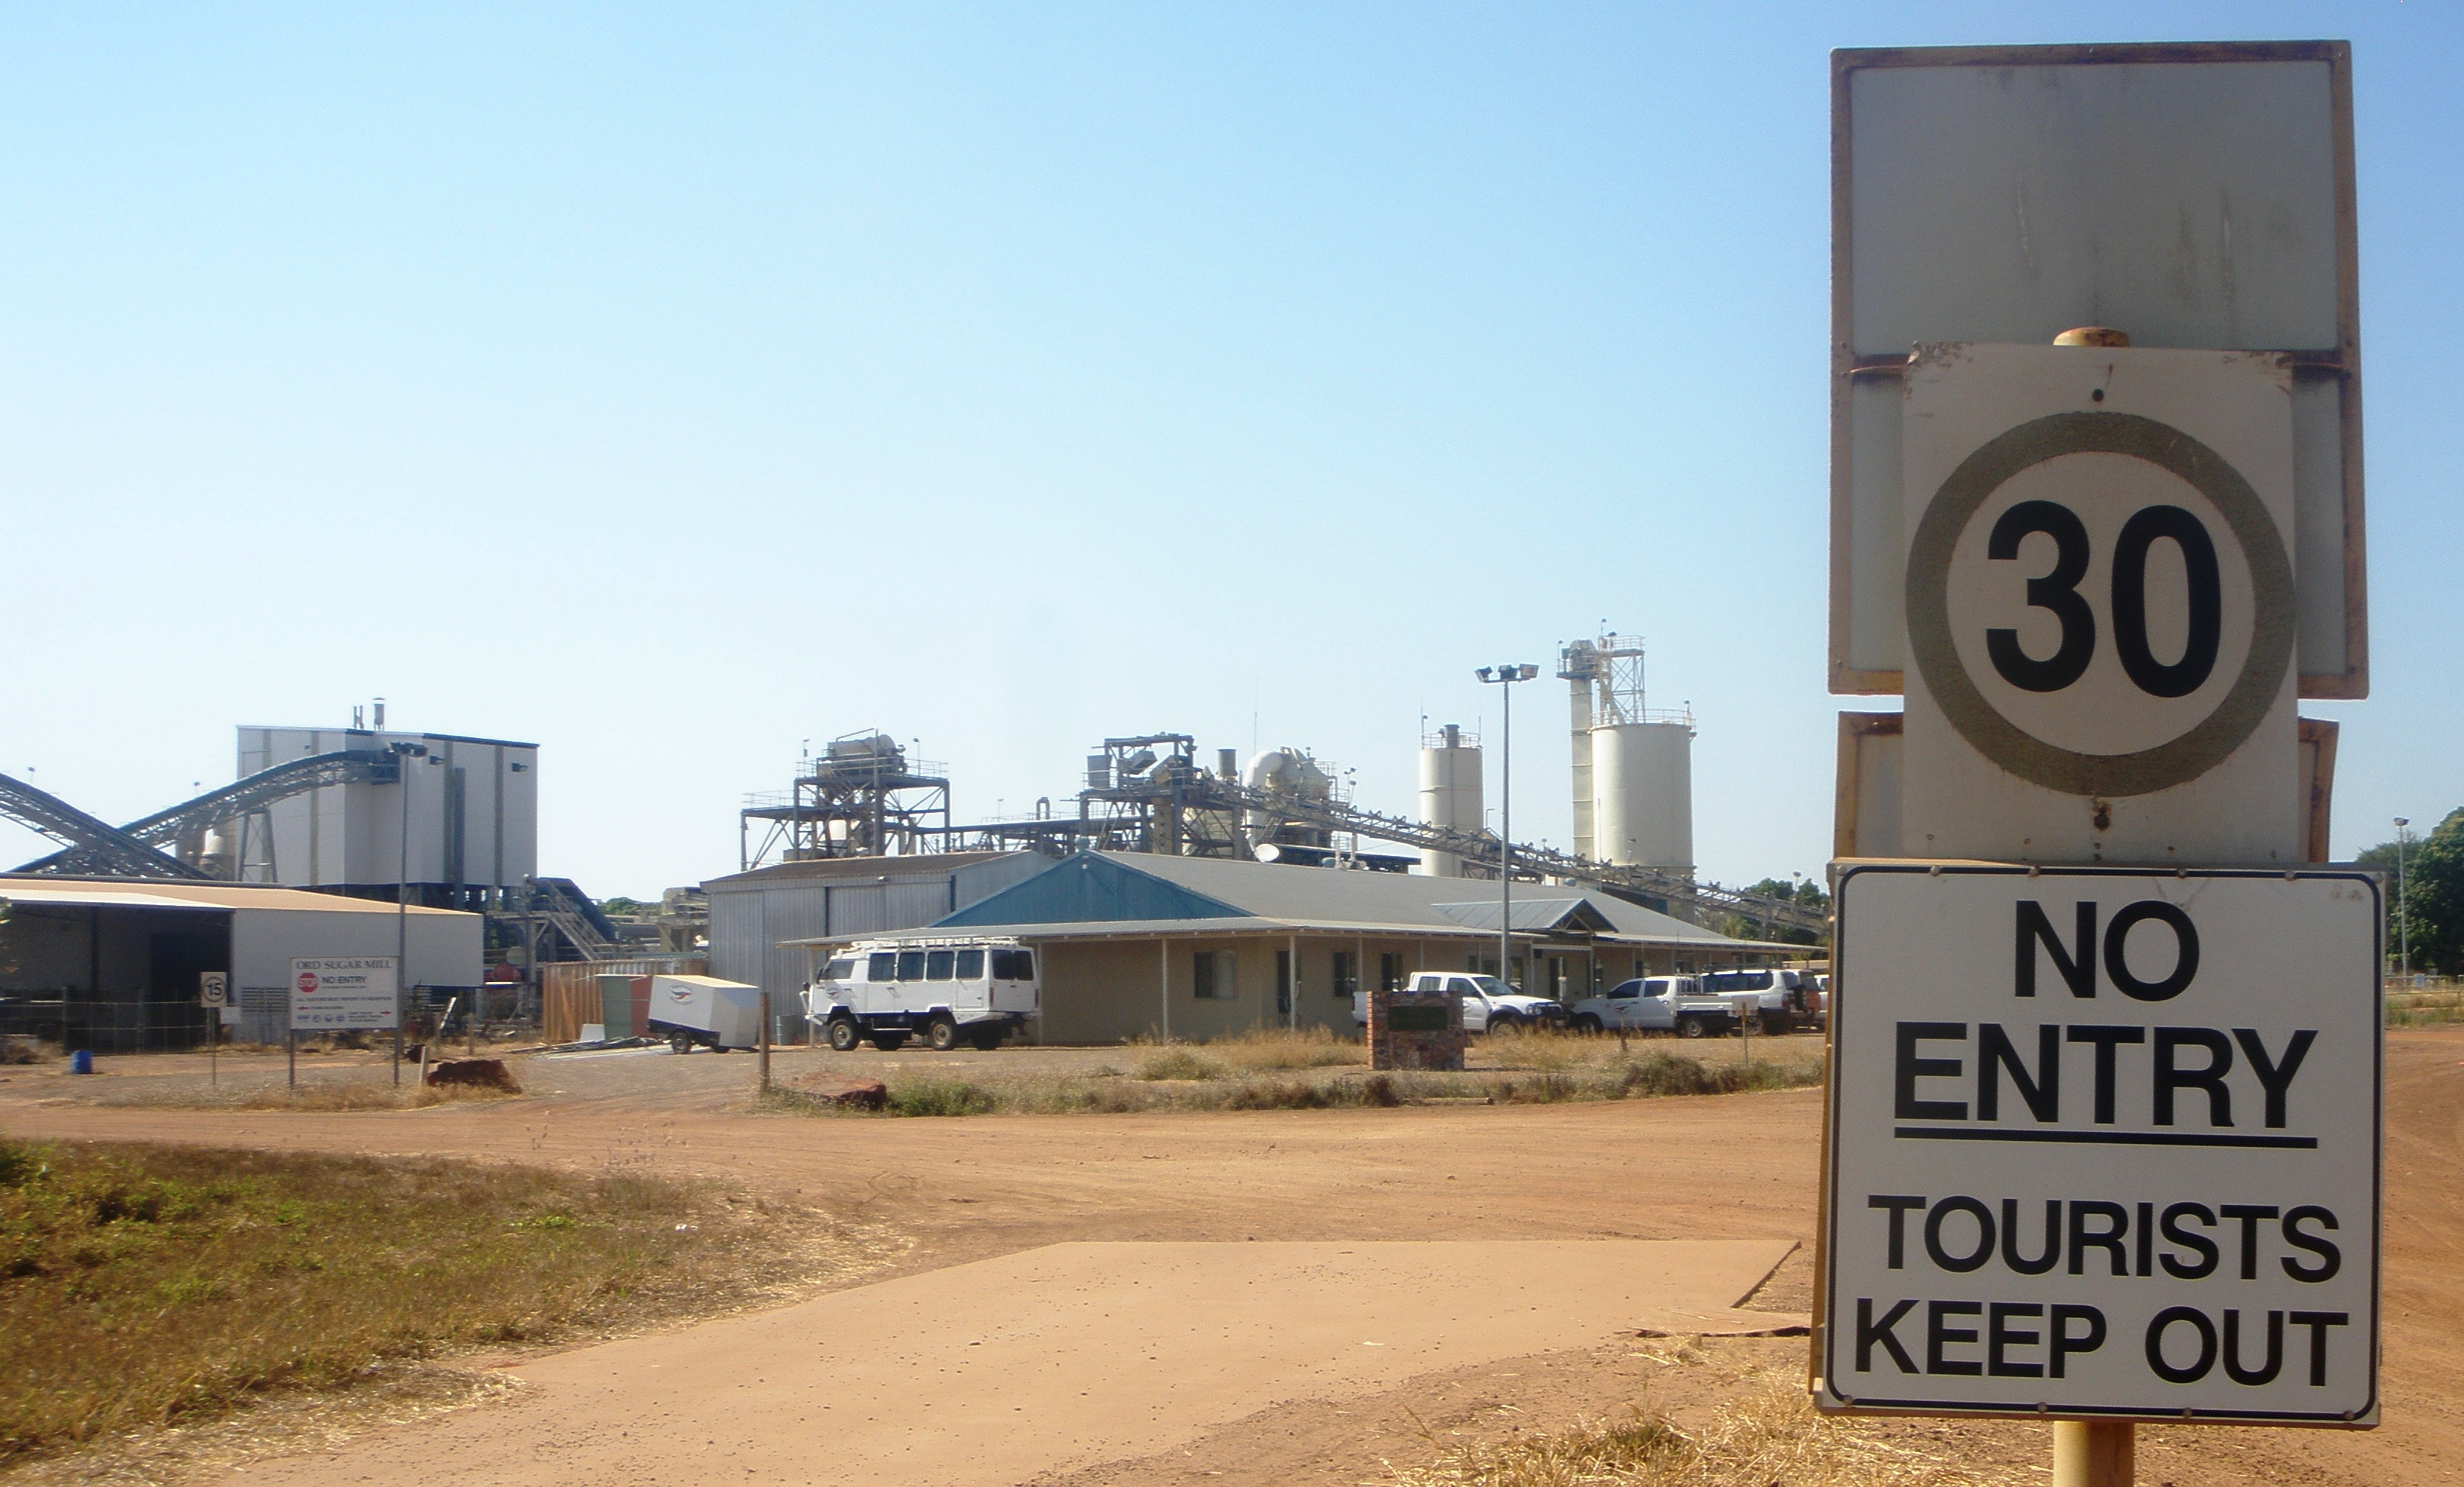 Ord sugar mill, now leased by a sandlewood company